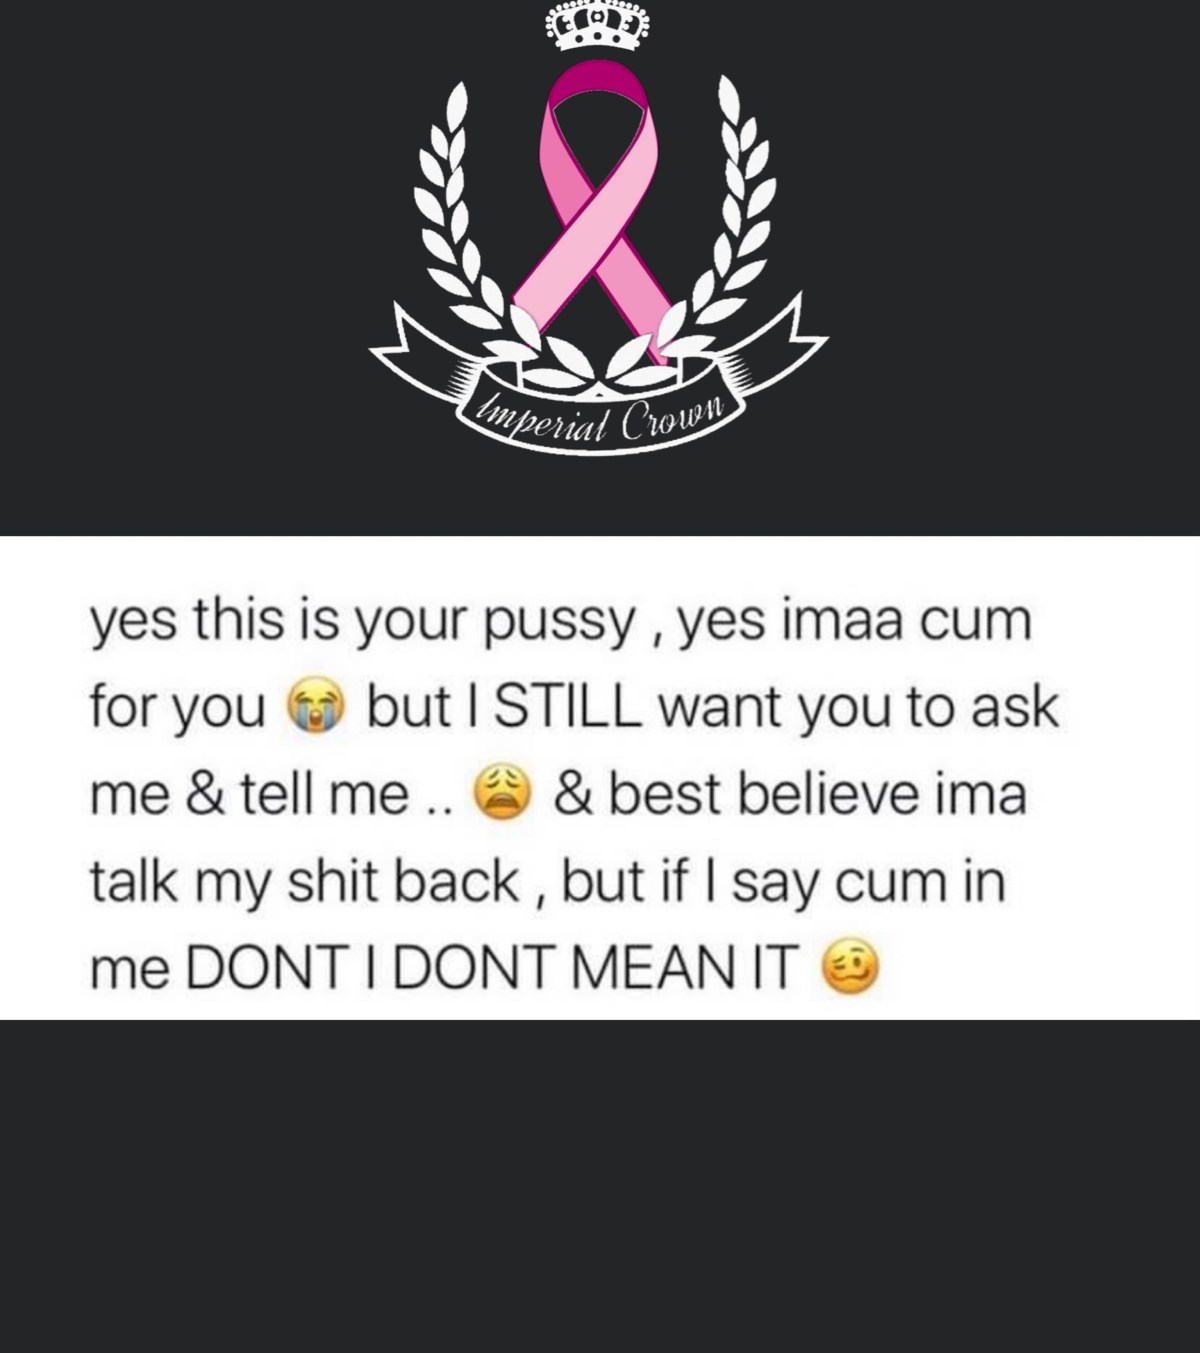 Yes this is your pussy yes ima cum for you but I still want you to ask me & tell